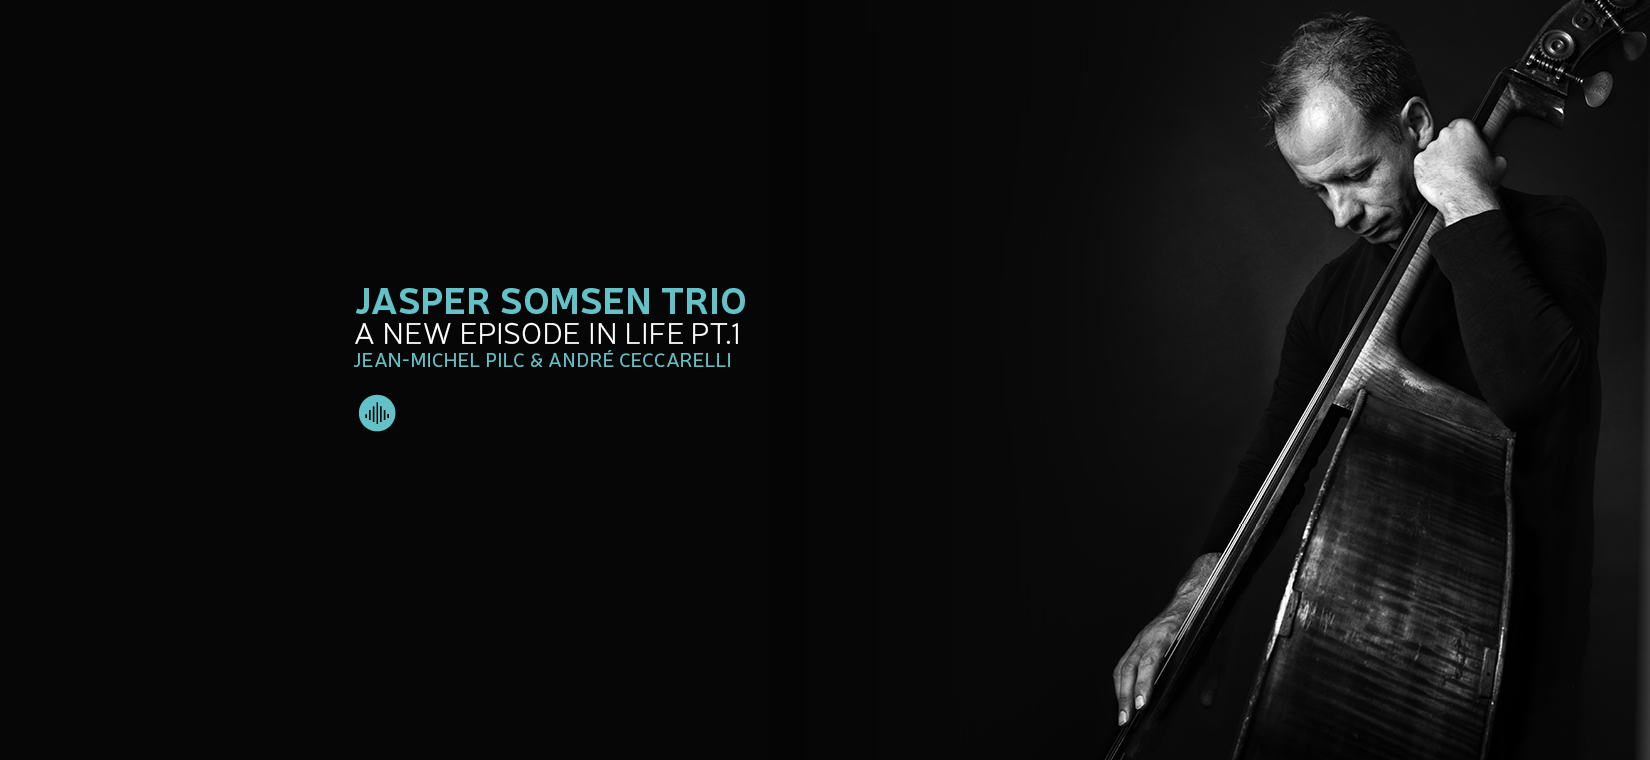 Jasper Somsen Trio: release March 10th of ''A New Episode in Life Part I''